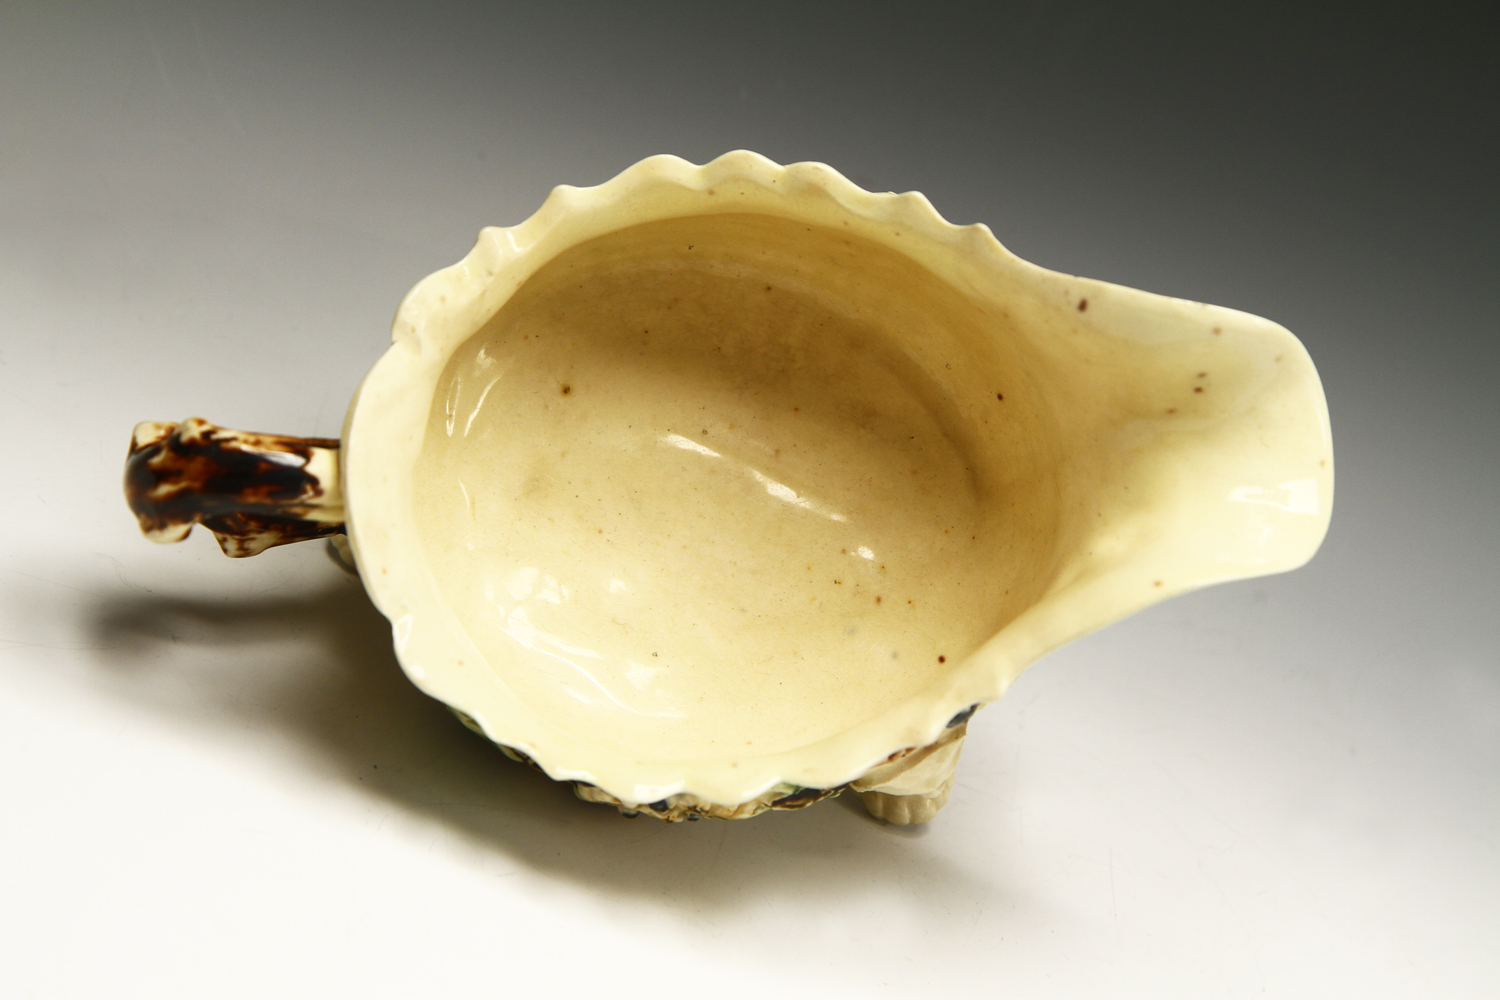 1013 - A fine early creamware sauceboat c 1745-55